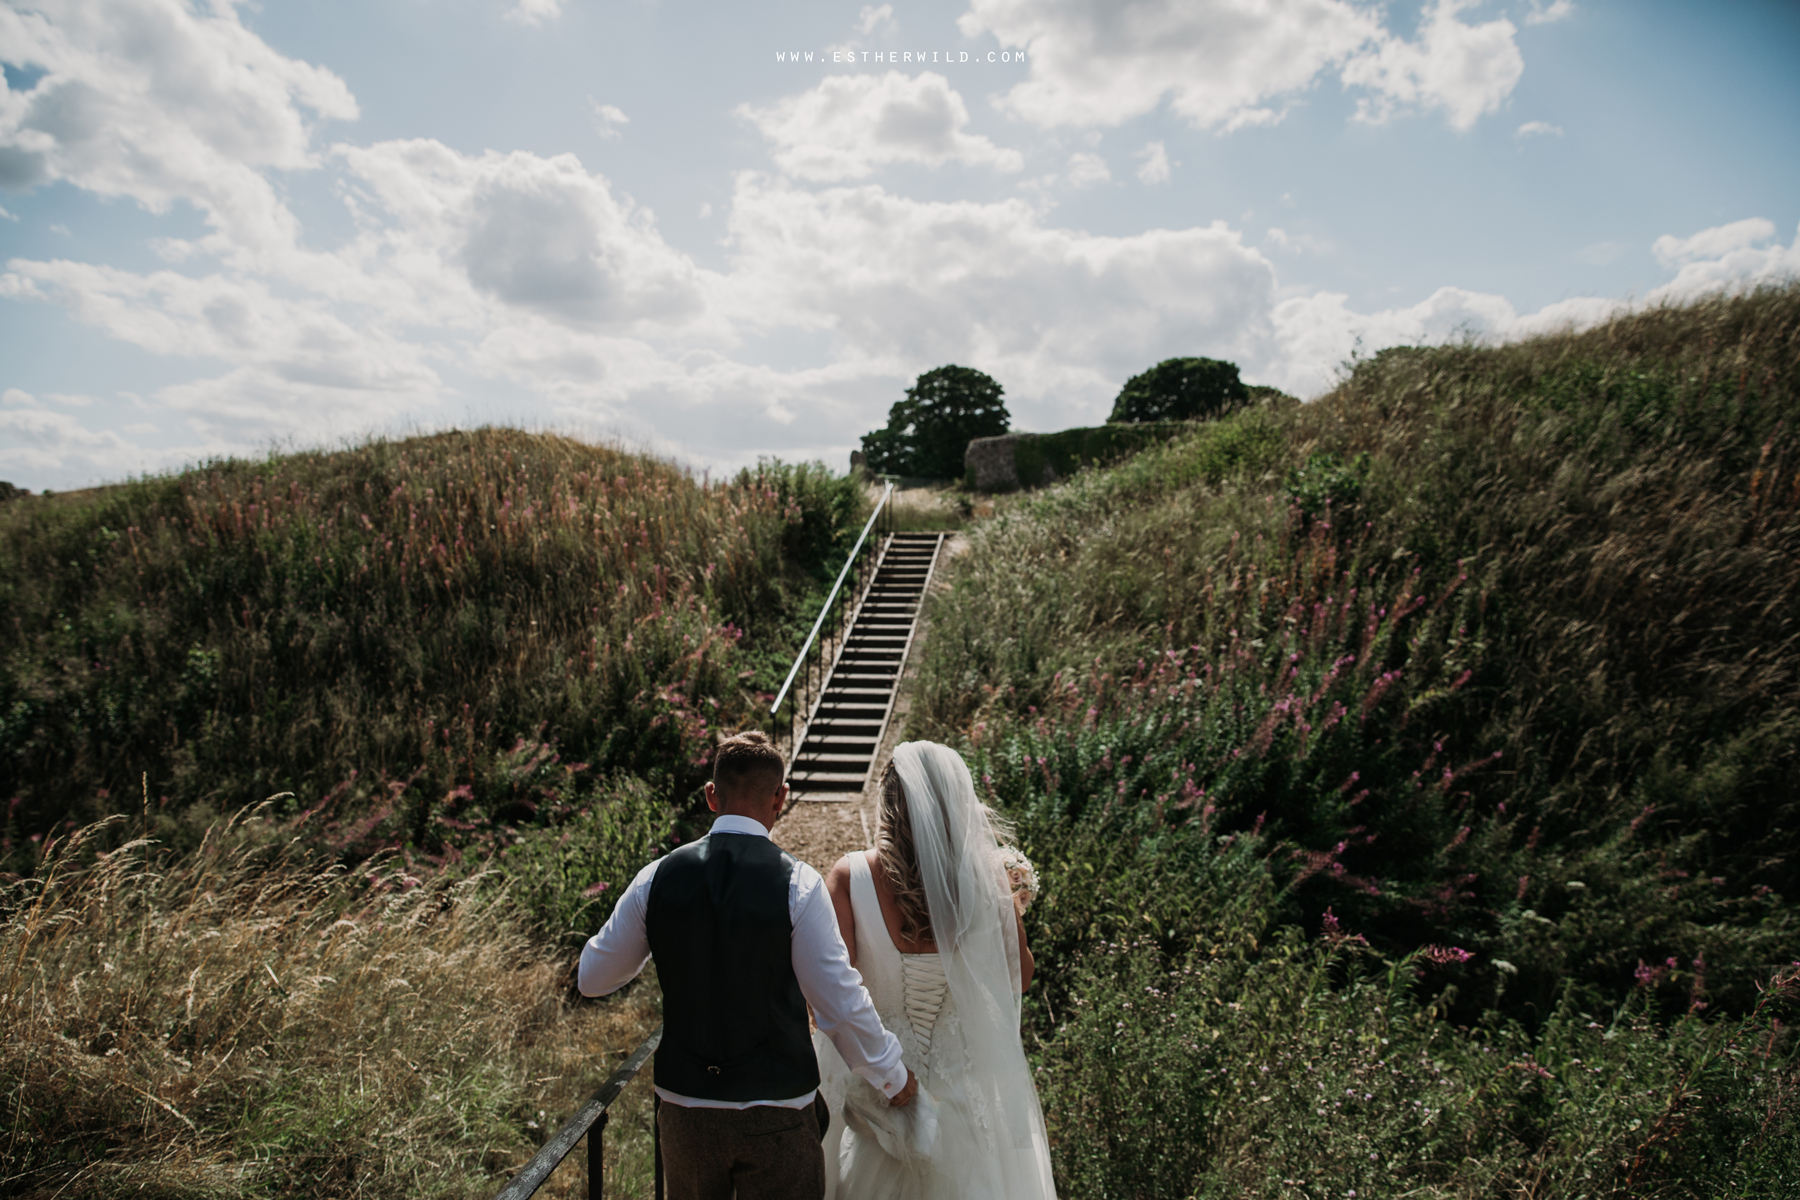 Swaffham_Wedding_Castle_Acre_Norfolk_Esther_Wild_Photographer_Wedding_Photography_3R8A1352.jpg